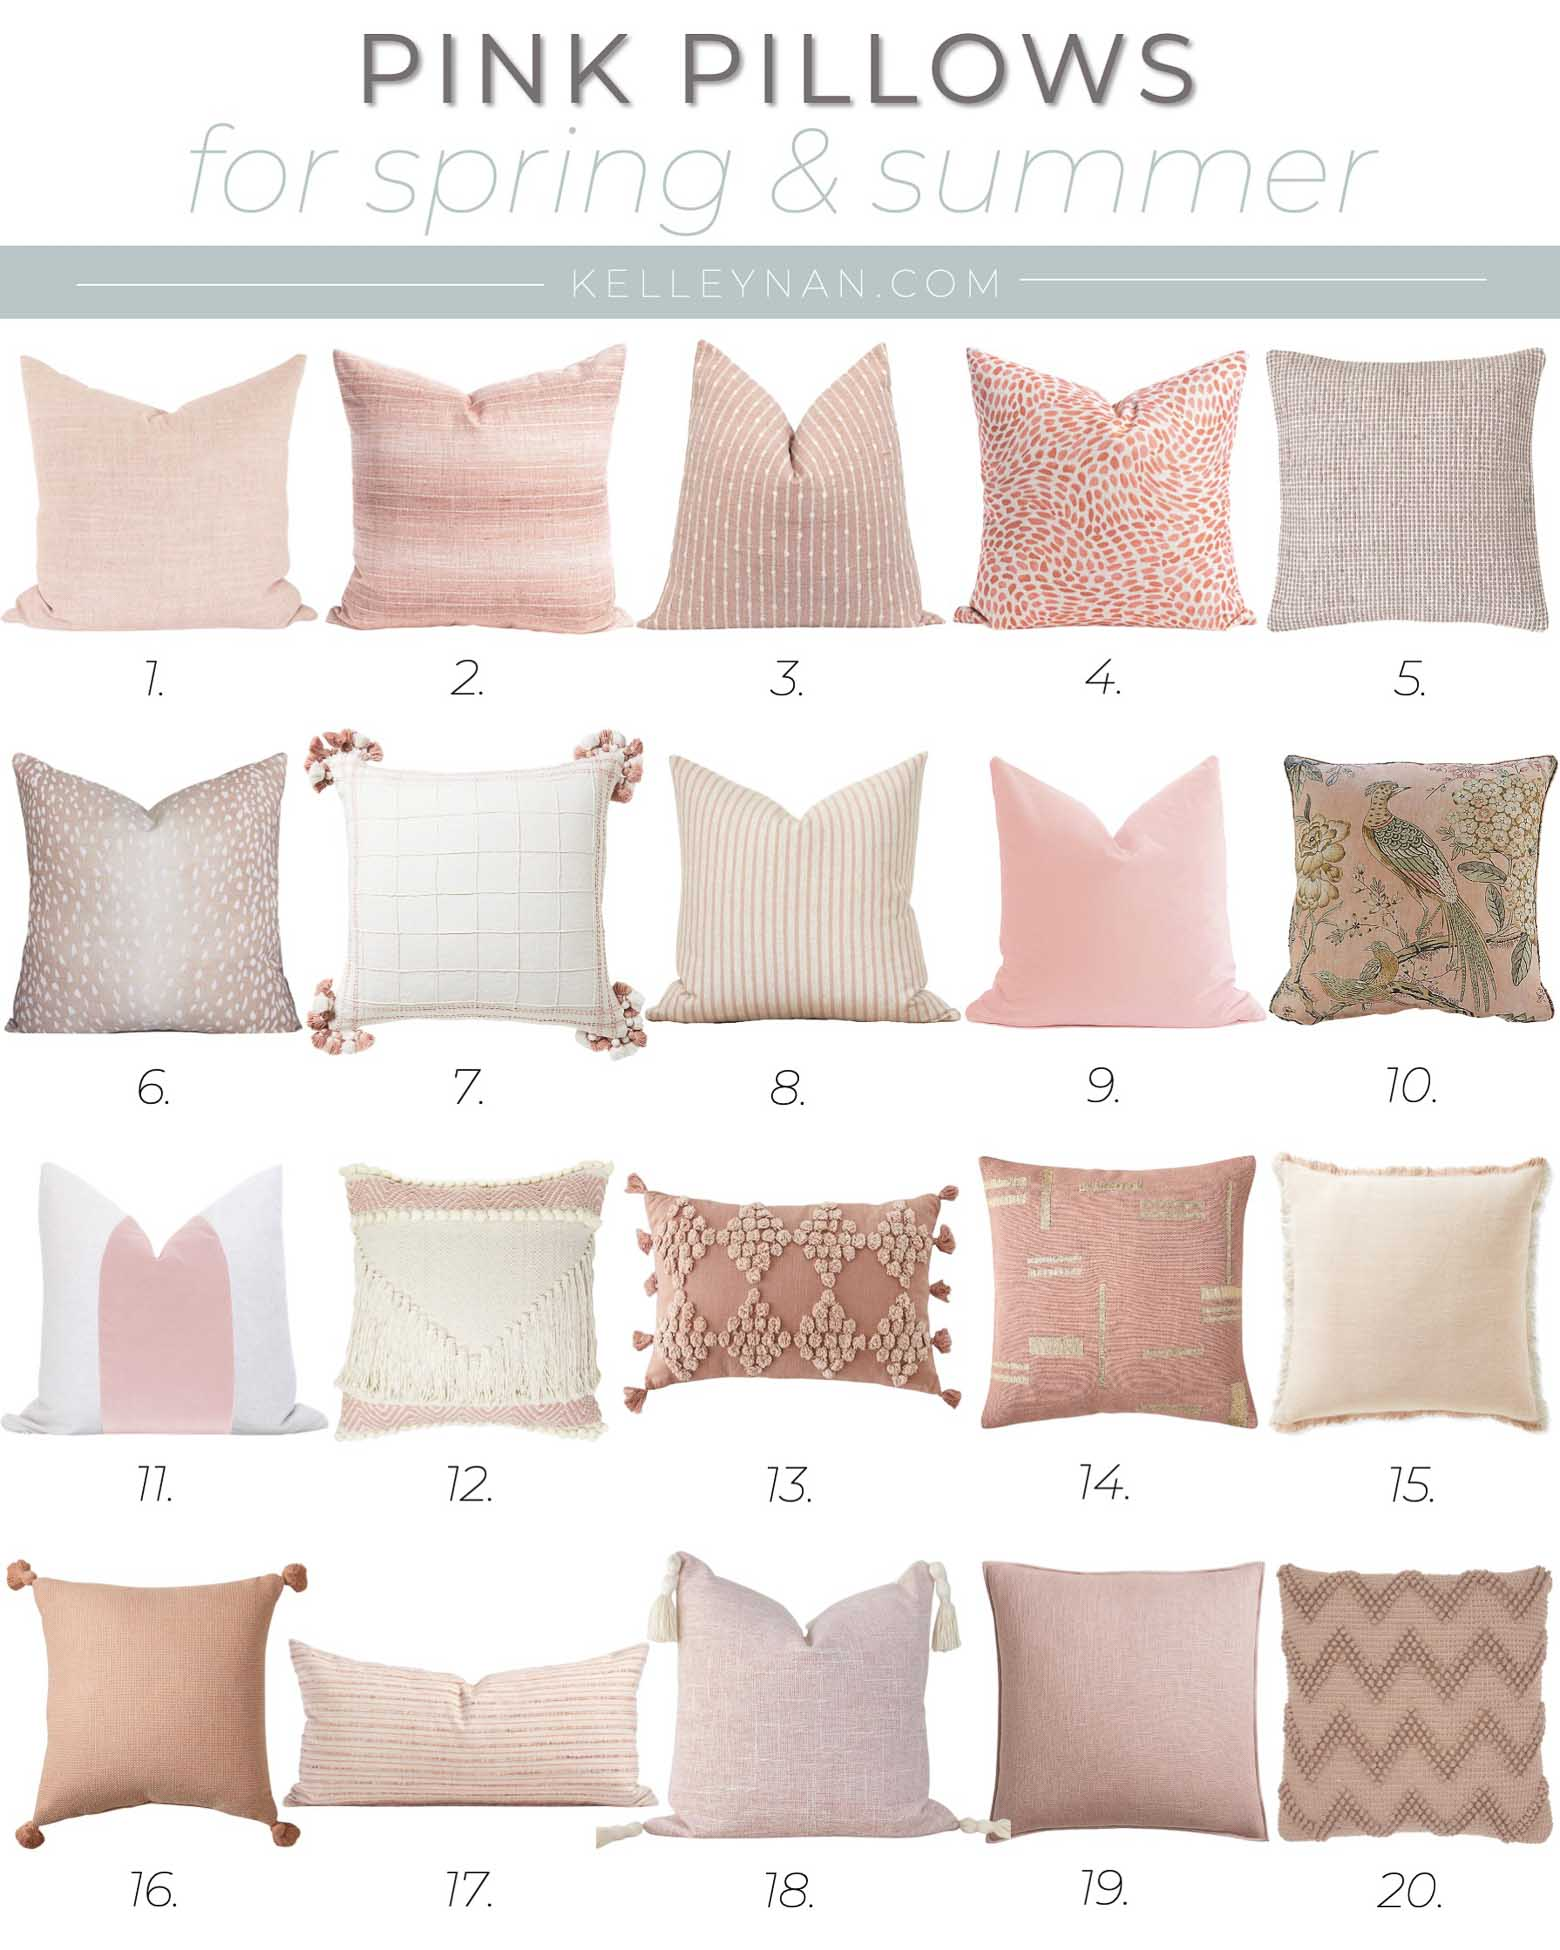 20 Favorite Pink Throw Pillows for Spring and Summer Decor